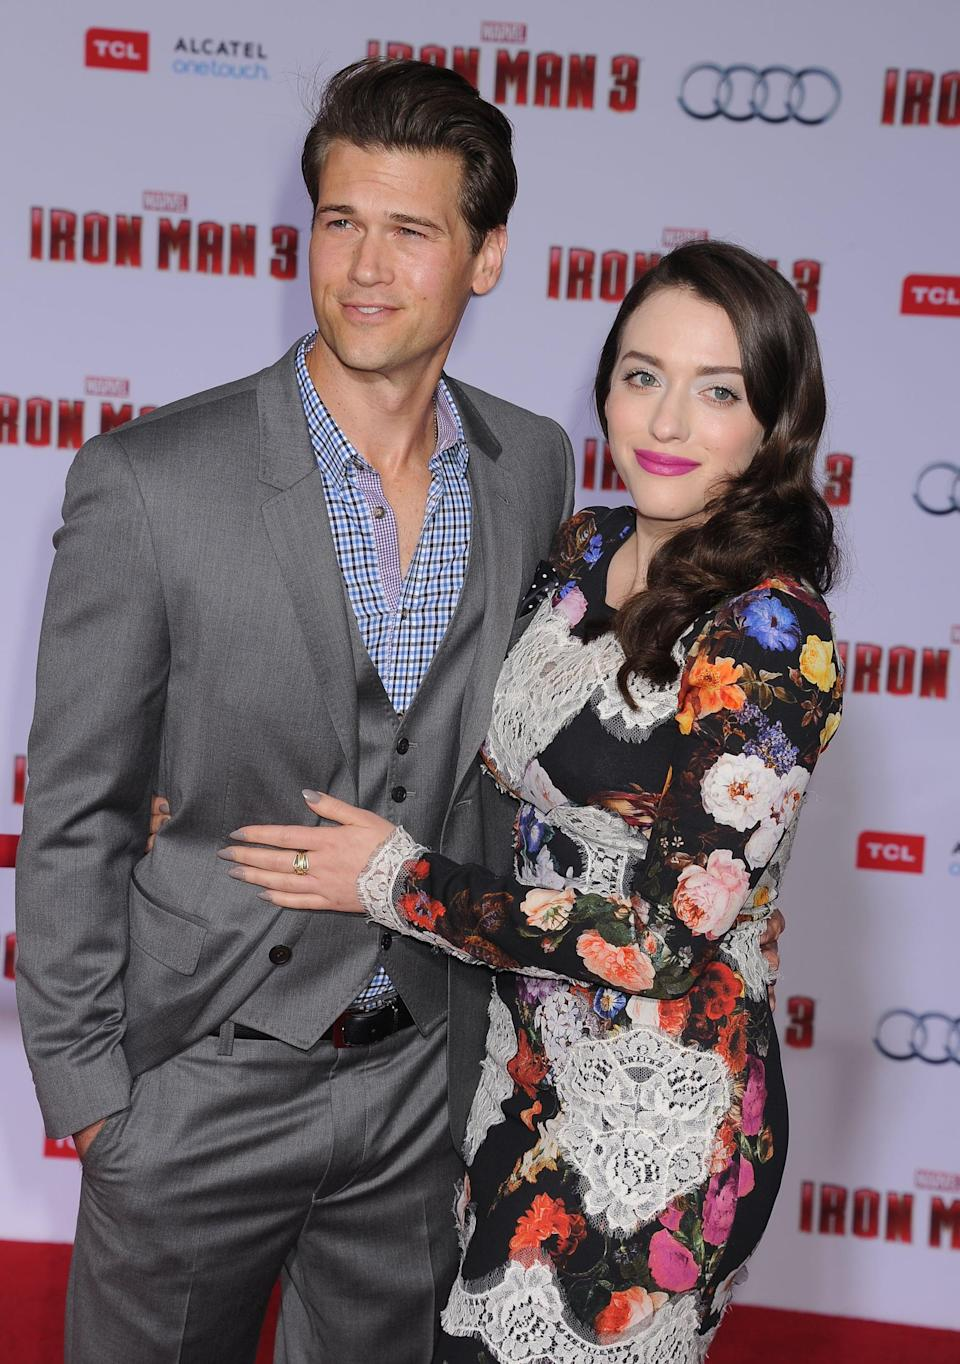 """<p>Kat began <a href=""""https://www.usmagazine.com/celebrity-news/news/kat-dennings-dating-2-broke-girls-guest-star-nick-zano-201261/"""" class=""""link rapid-noclick-resp"""" rel=""""nofollow noopener"""" target=""""_blank"""" data-ylk=""""slk:dating her 2 Broke Girls costar"""">dating her <strong>2 Broke Girls</strong> costar</a> at the end of 2011. The pair met while working on the show, with Kat telling <strong>Glamour</strong> of the relationship in 2012, """"Yes! I have nothing to hide! It's the truth! <a href=""""https://www.glamour.com/story/-2-broke-girlskat-dennings-ope"""" class=""""link rapid-noclick-resp"""" rel=""""nofollow noopener"""" target=""""_blank"""" data-ylk=""""slk:He's the best!"""">He's the best!</a>"""" Much like the characters of Max and Johnny on the show, the relationship wasn't meant to last and they called it quits in 2014.</p>"""